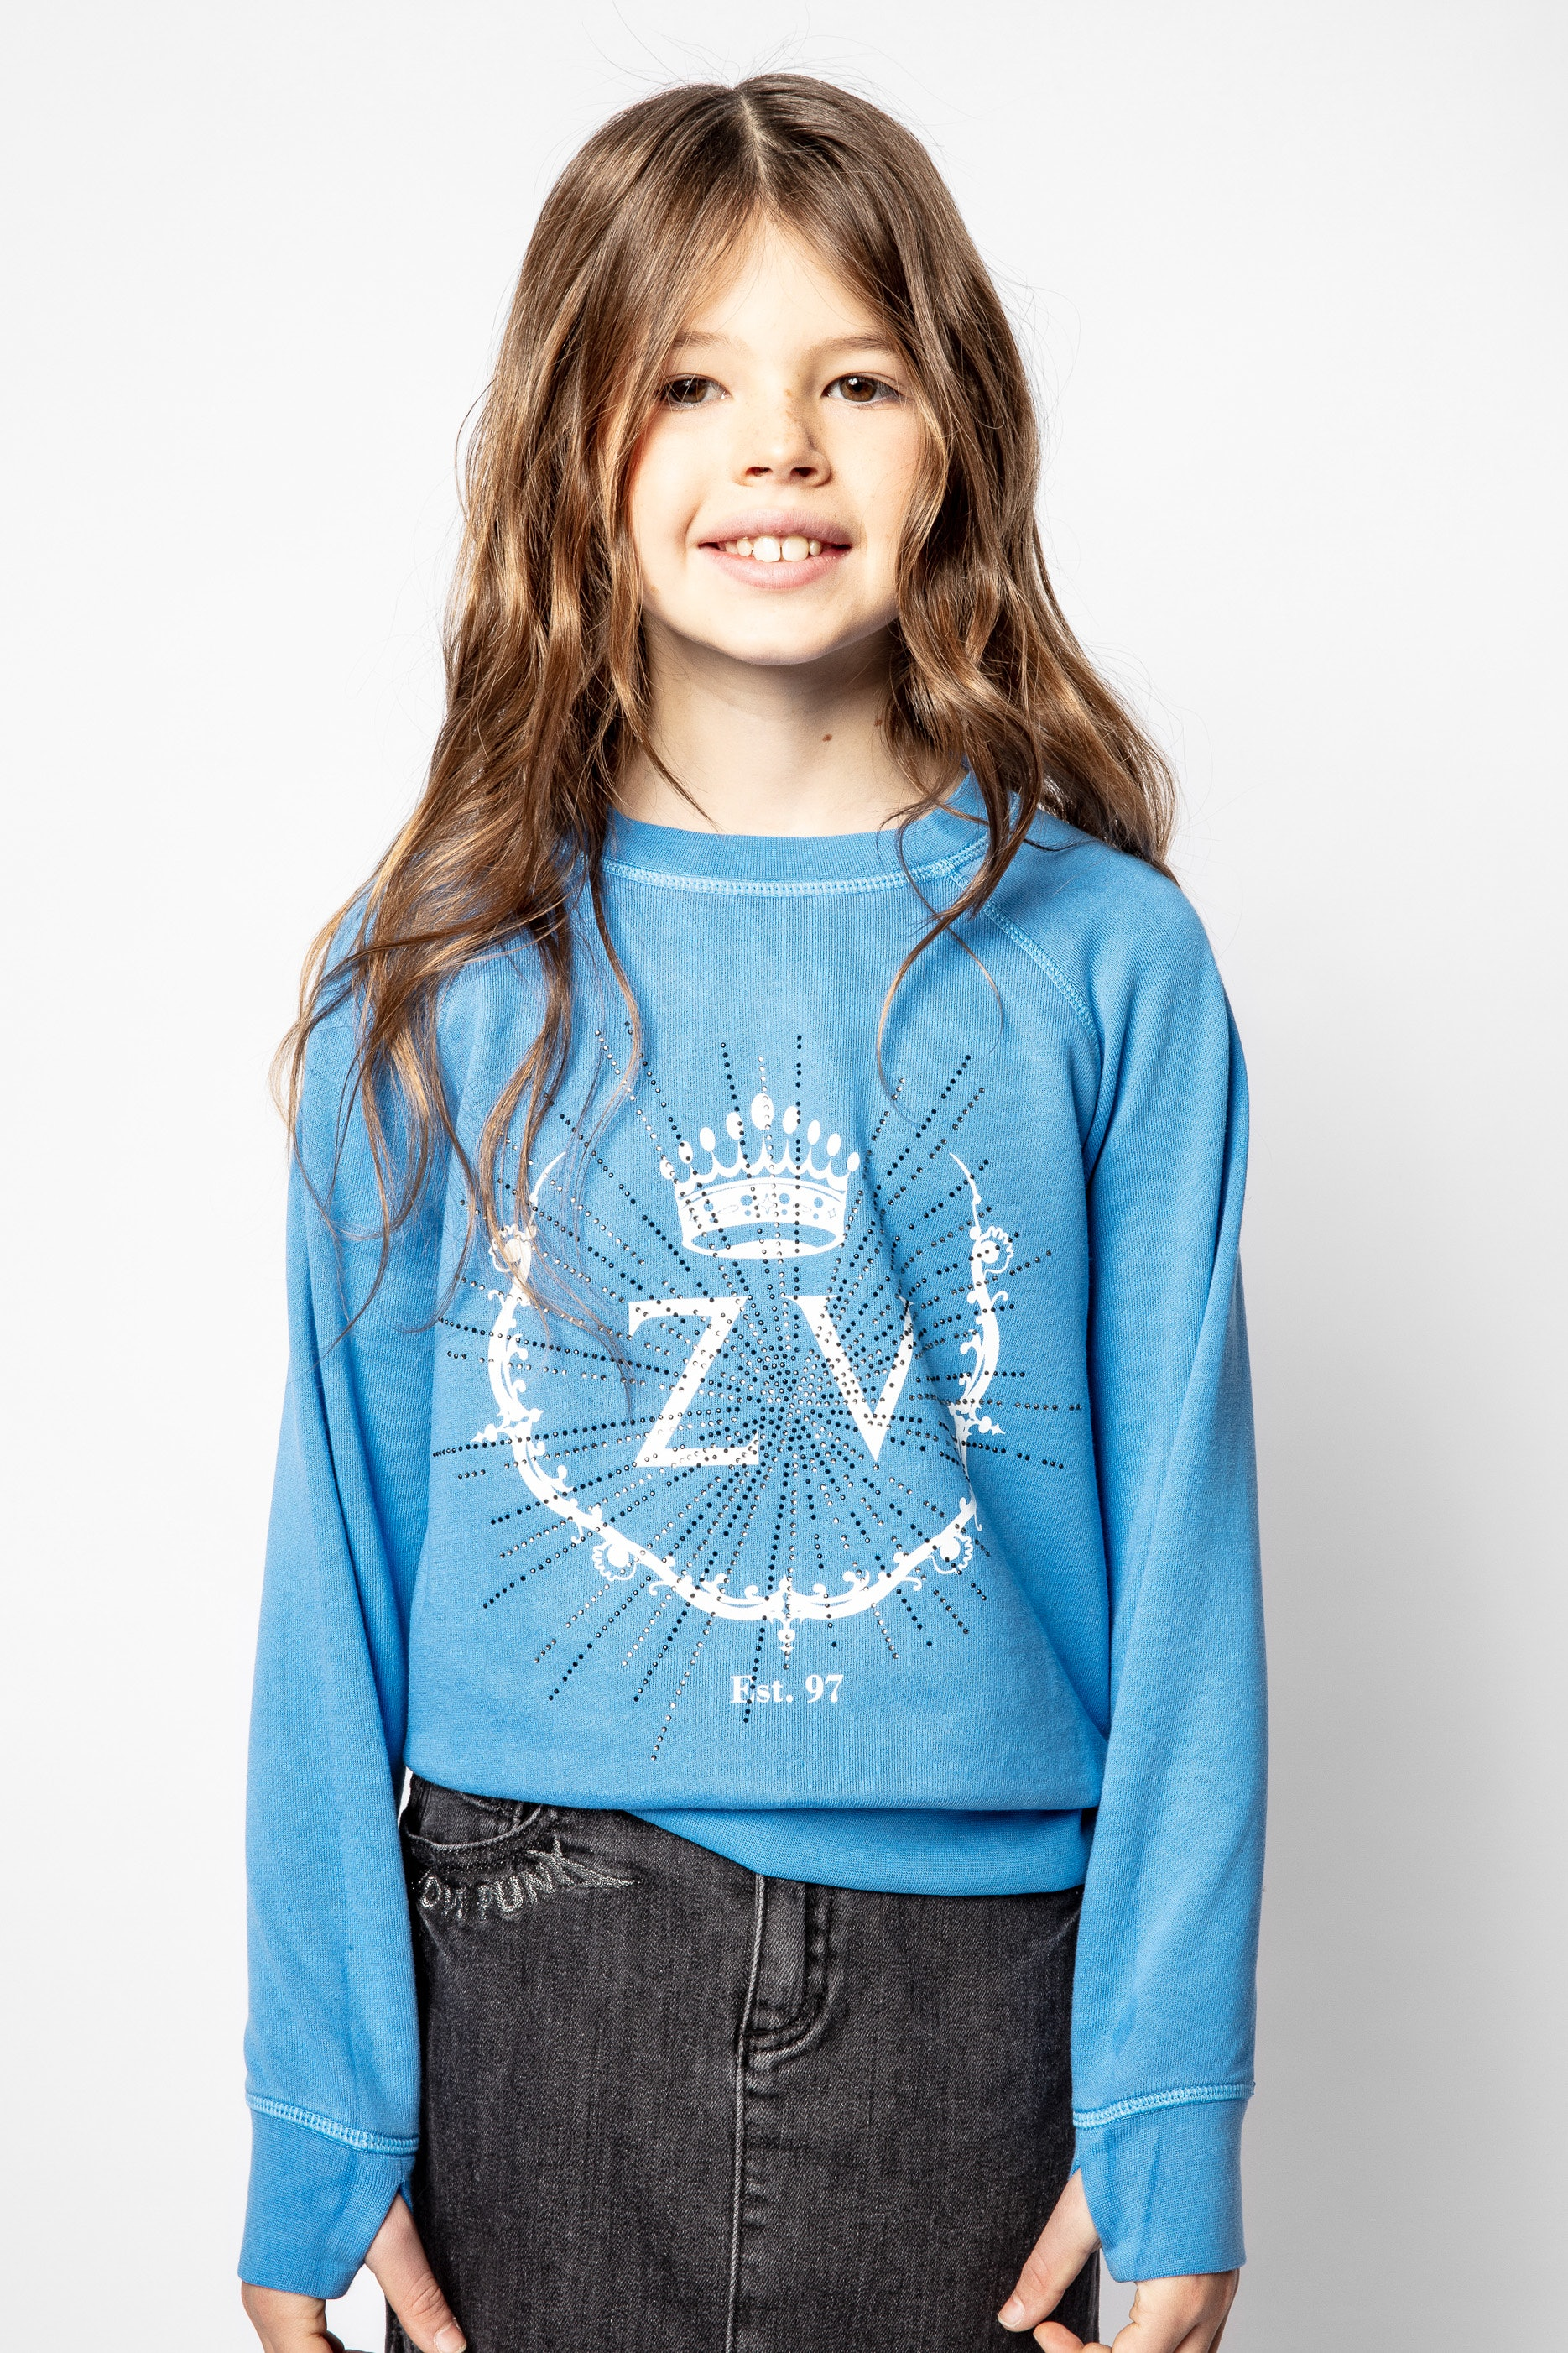 Child's Fame sweatshirt